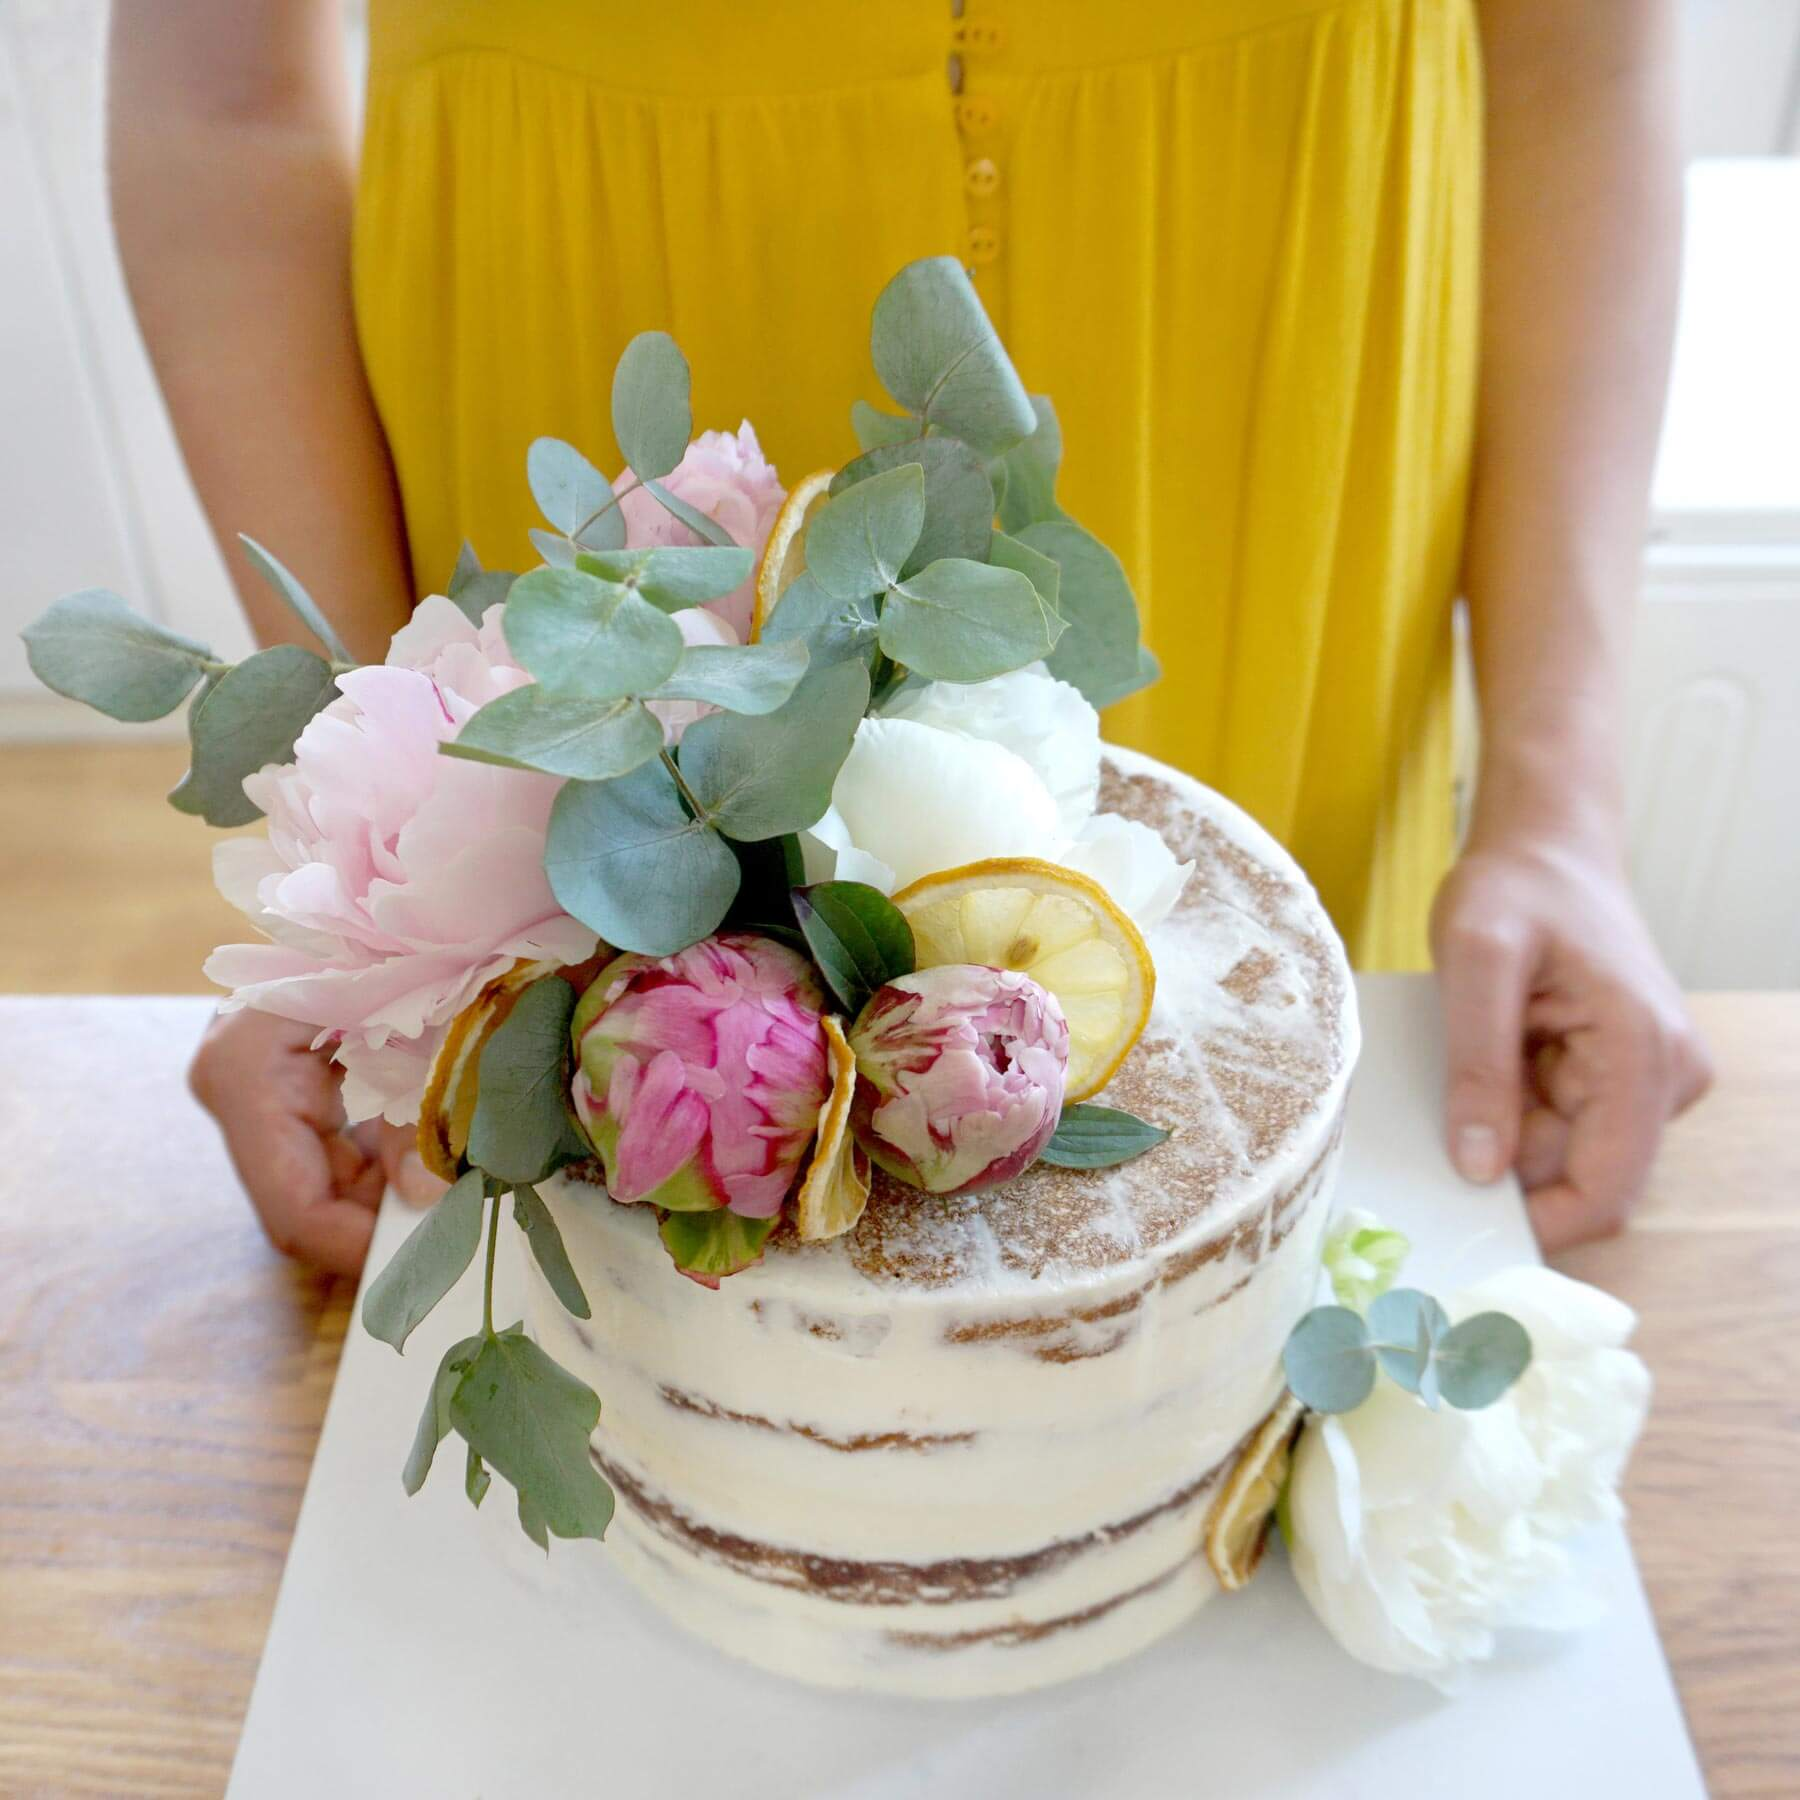 Naked Cake with Fresh Flowers – Evening Class